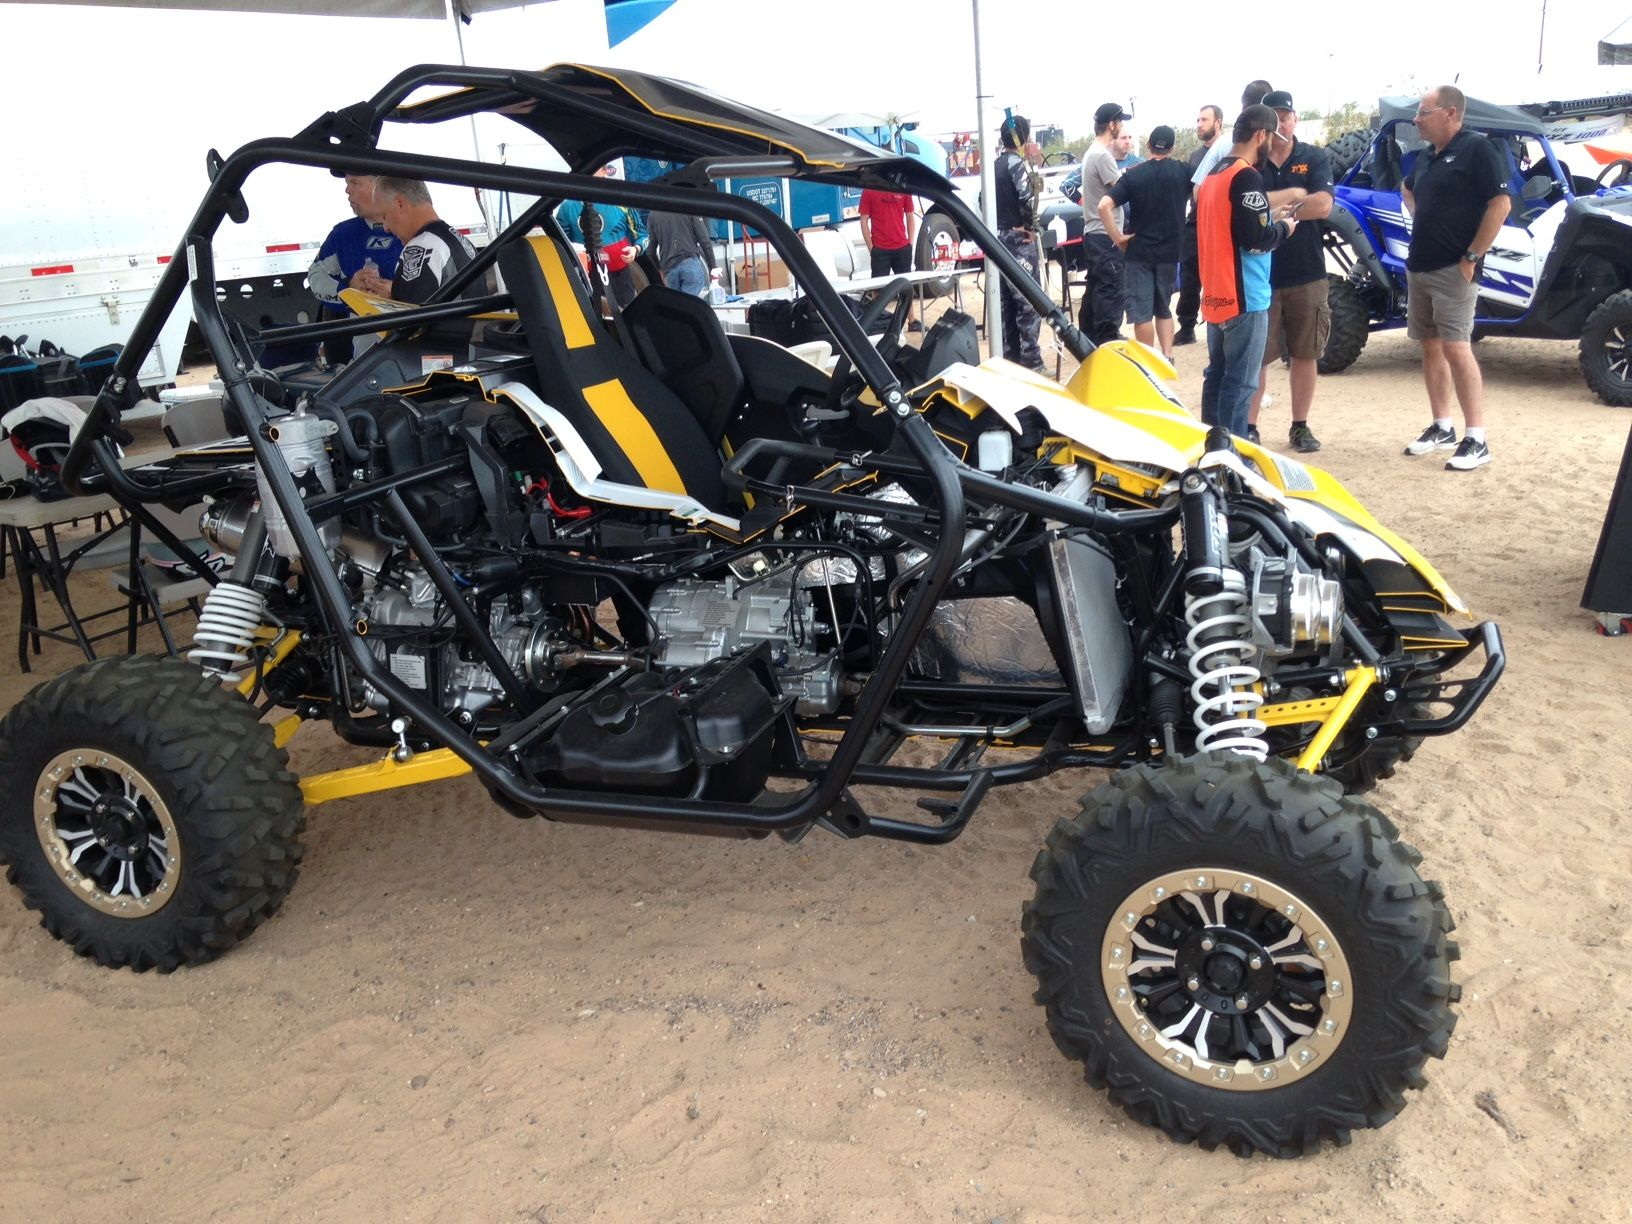 a cutaway view of the new yamaha yxz 1000r yamaha pinterest cutaway atv and rally. Black Bedroom Furniture Sets. Home Design Ideas